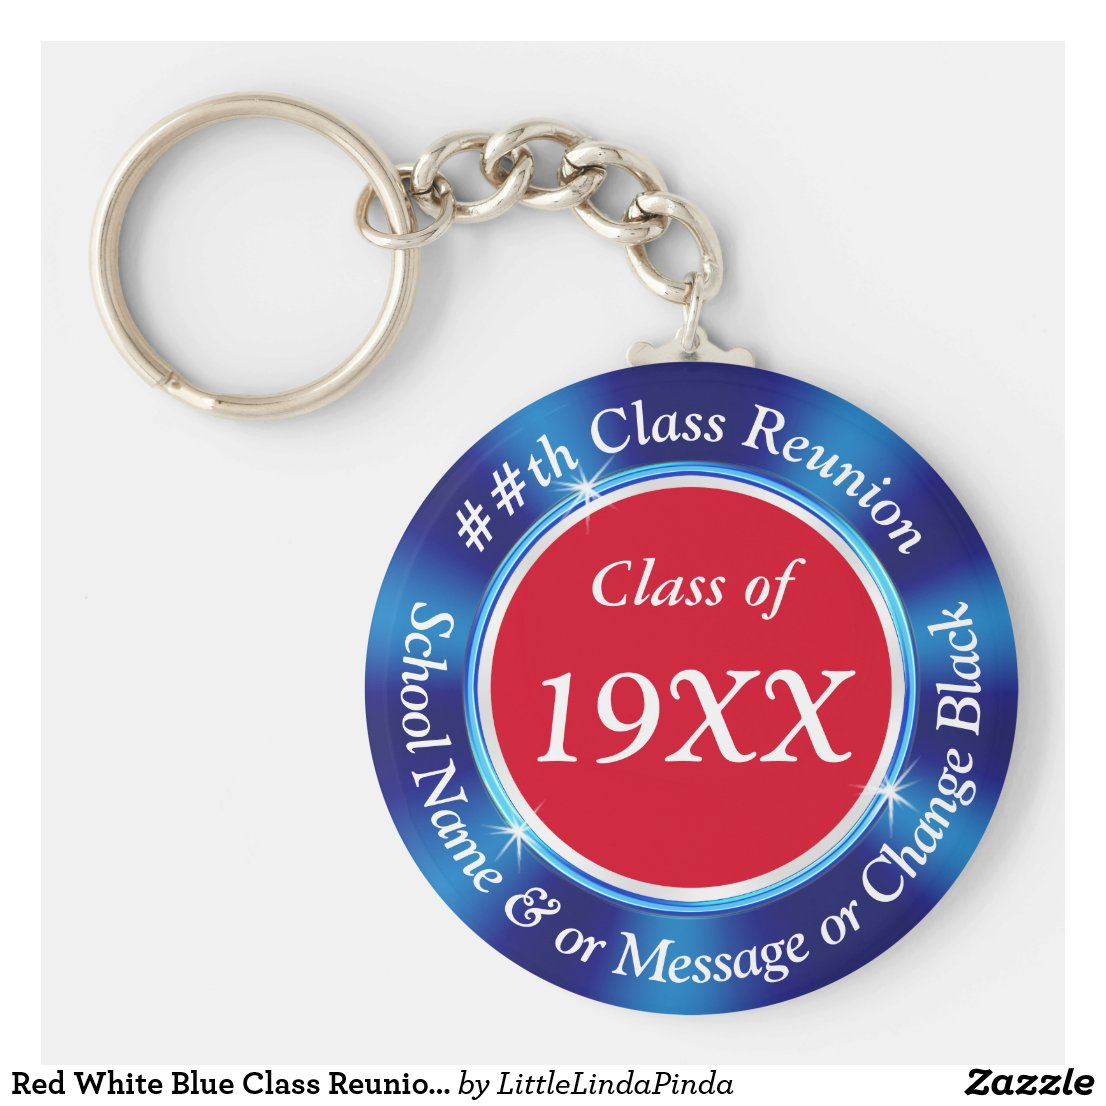 Red White Blue Class Reunion Favors, Personalized Keychain